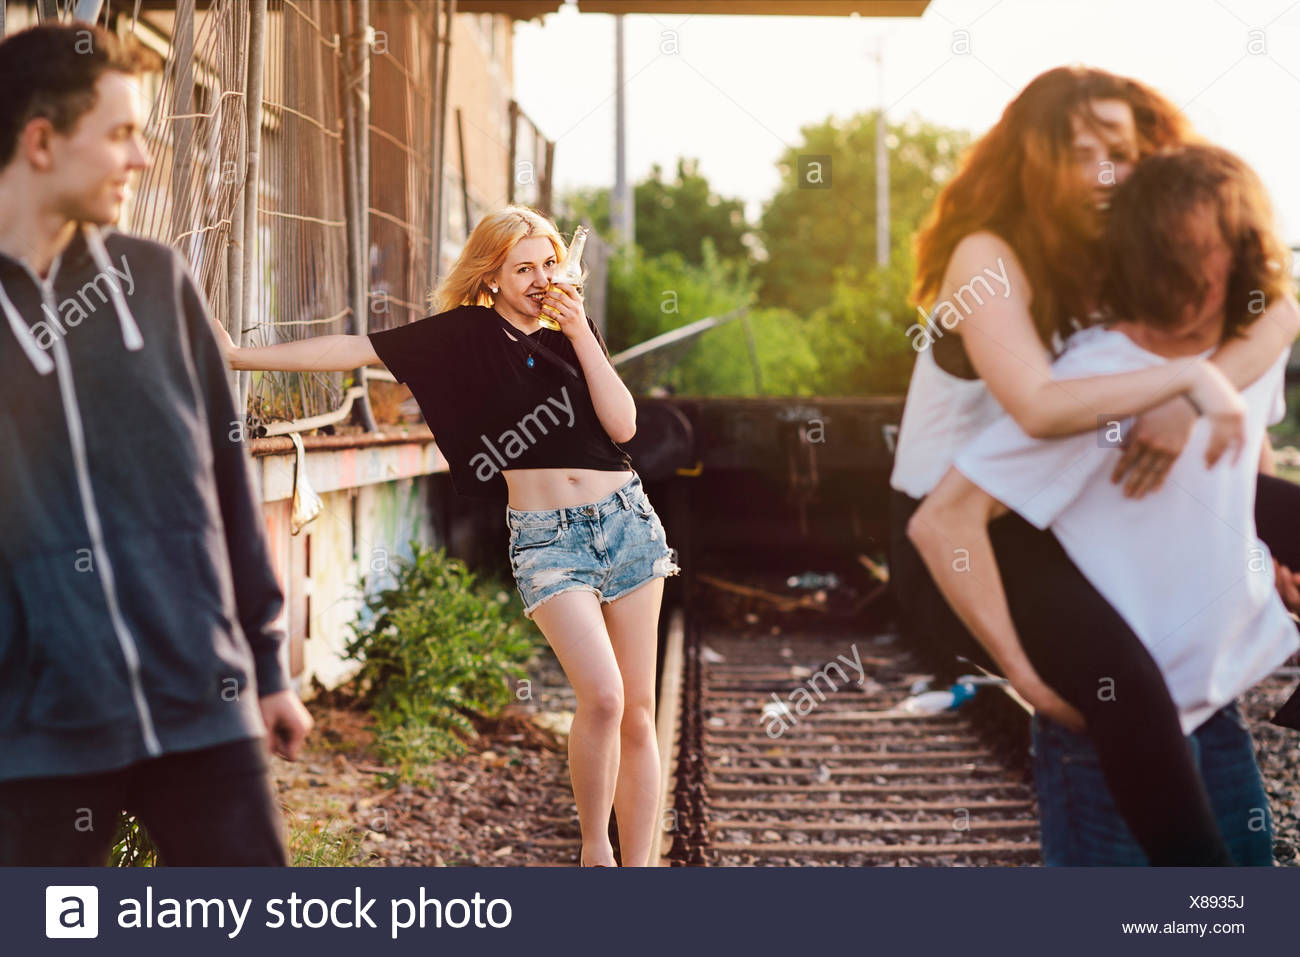 Friends romping around on tracks - Stock Image